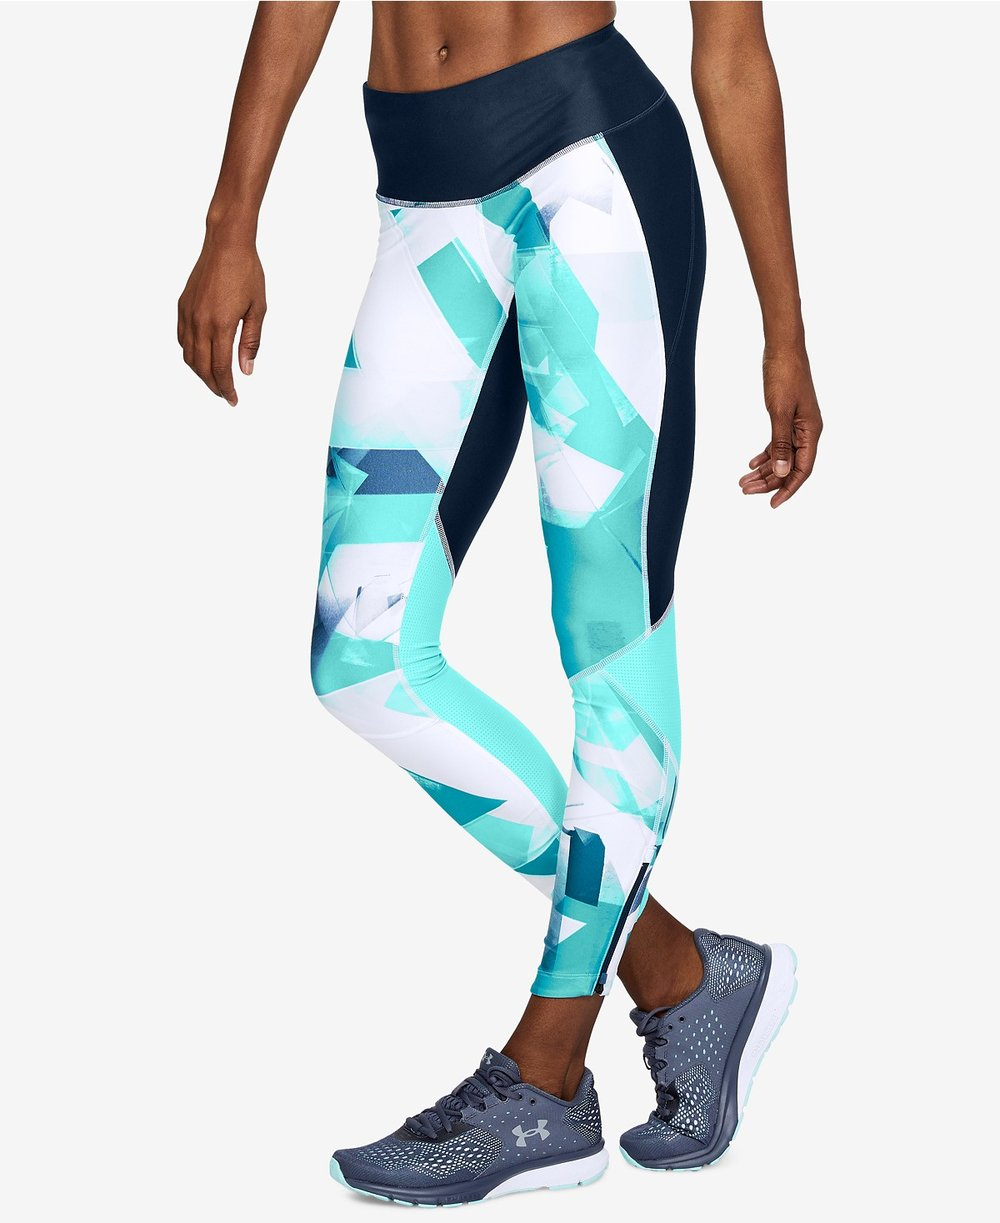 Cute Yoga Pants - Cute Women's Leggings